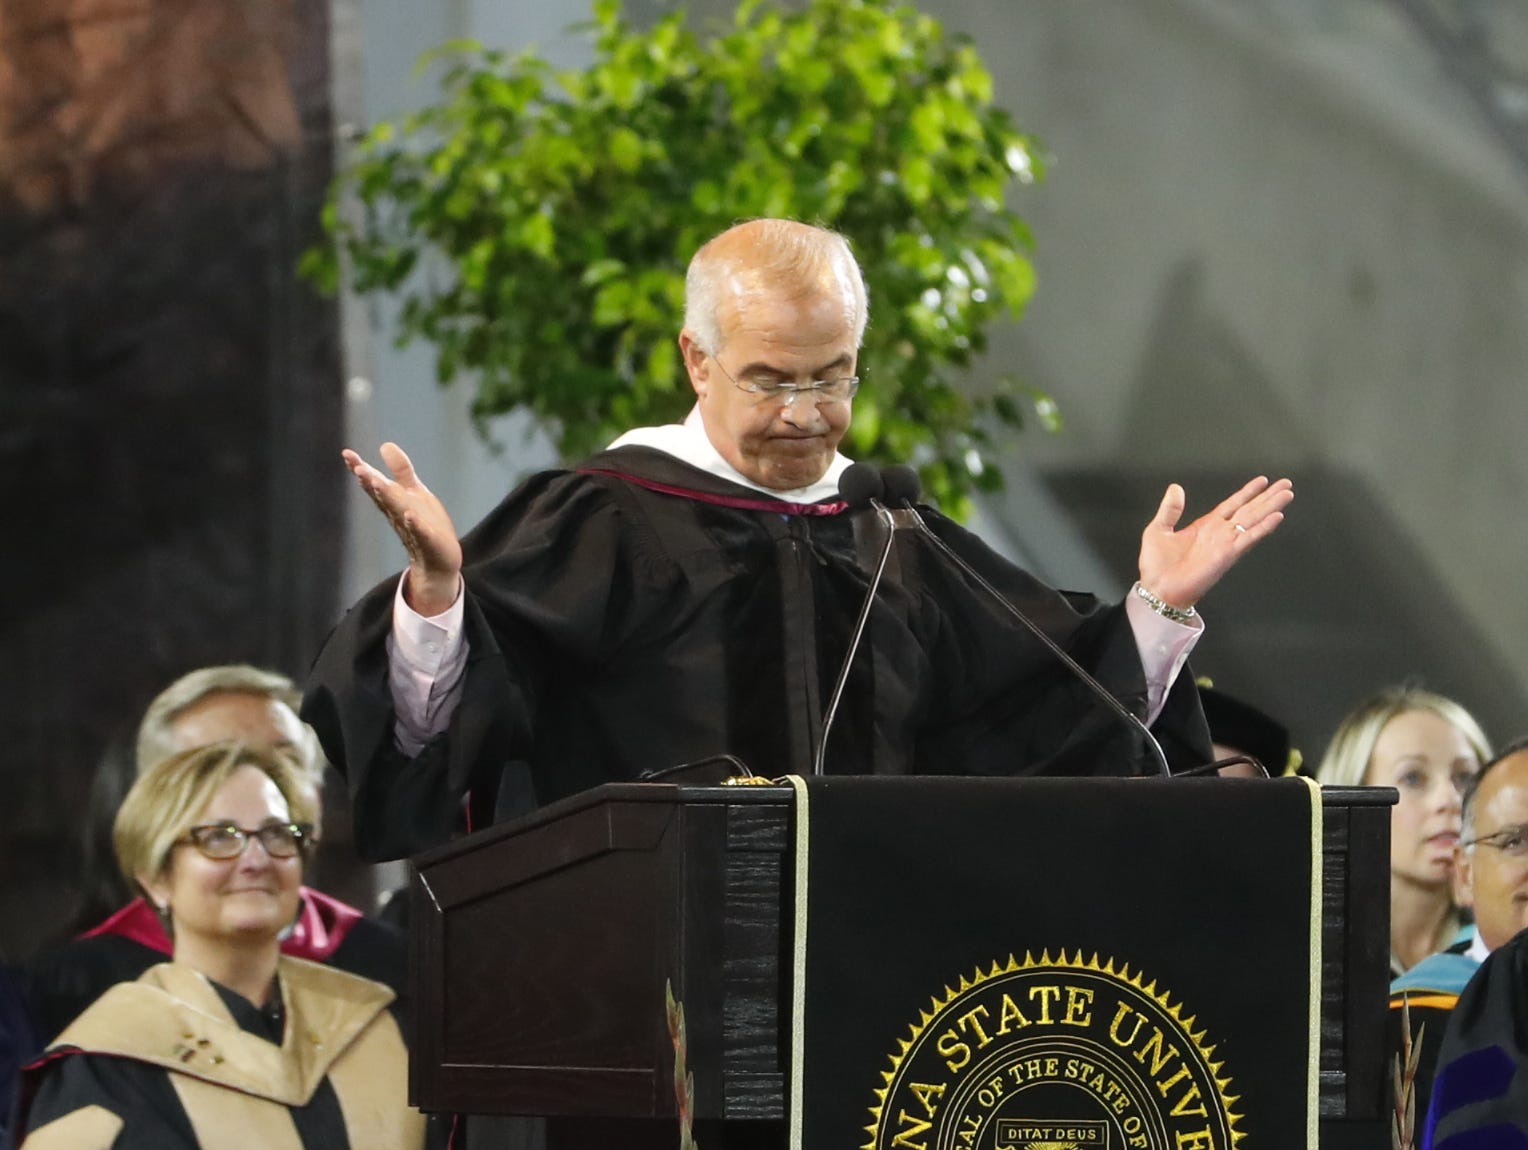 David Brooks speaks after receiving his honorary degree during ASU's Undergraduate Commencement at Sun Devil Stadium in Tempe, Ariz. on May 6, 2019.